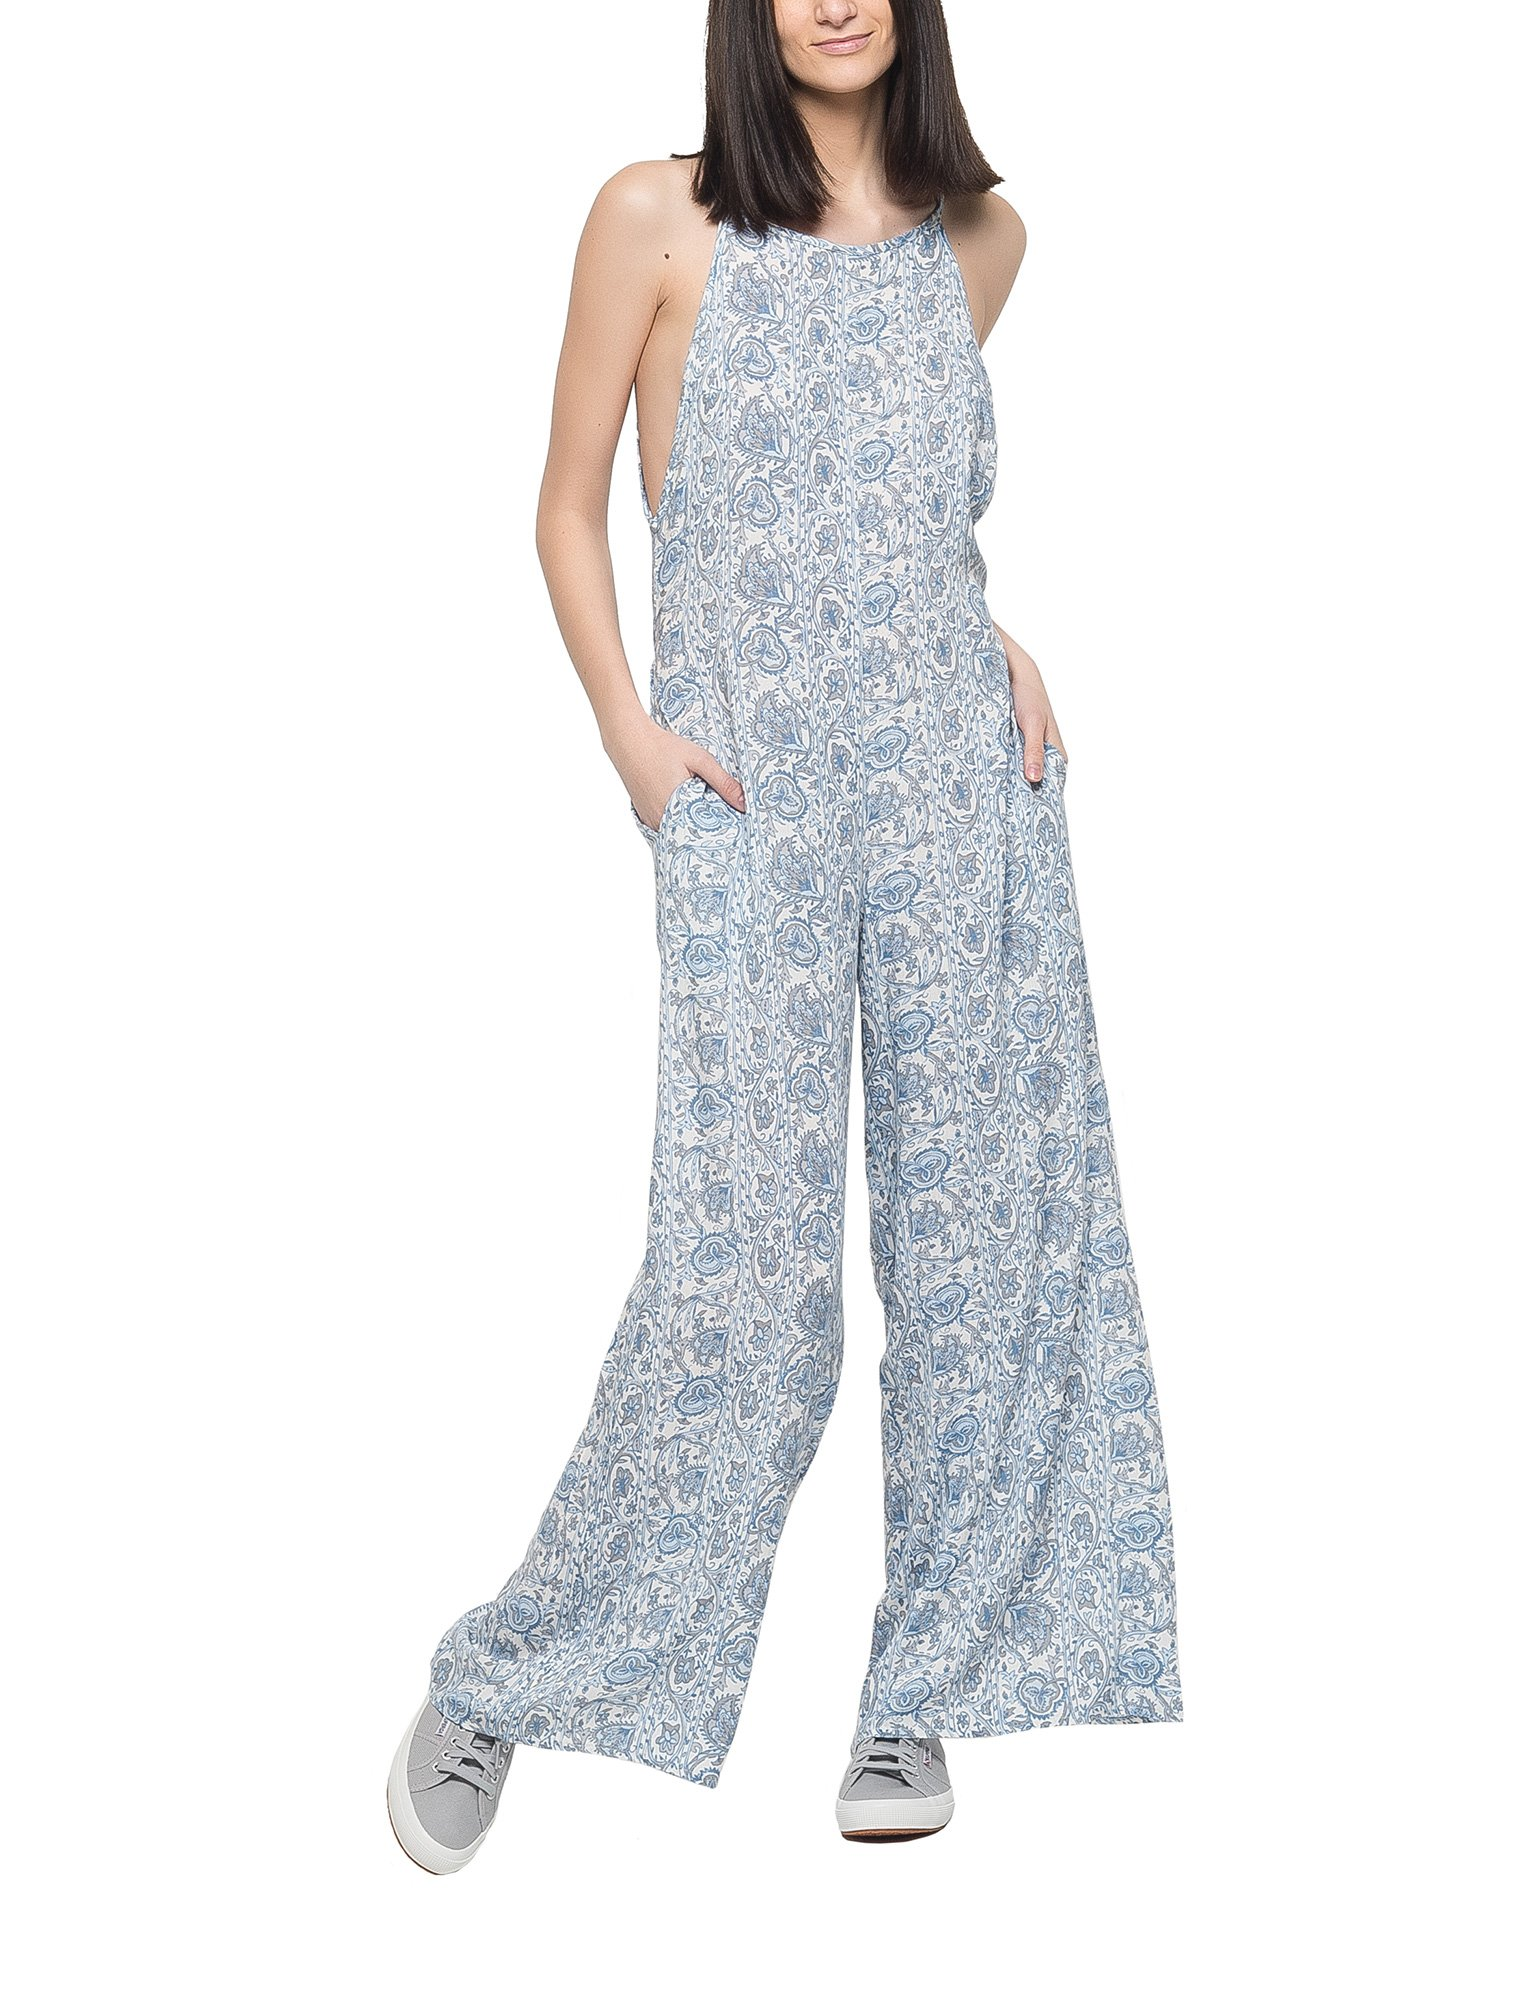 Ppla Women's Gemma Women's Blue Jumpsuit in Size S Blue